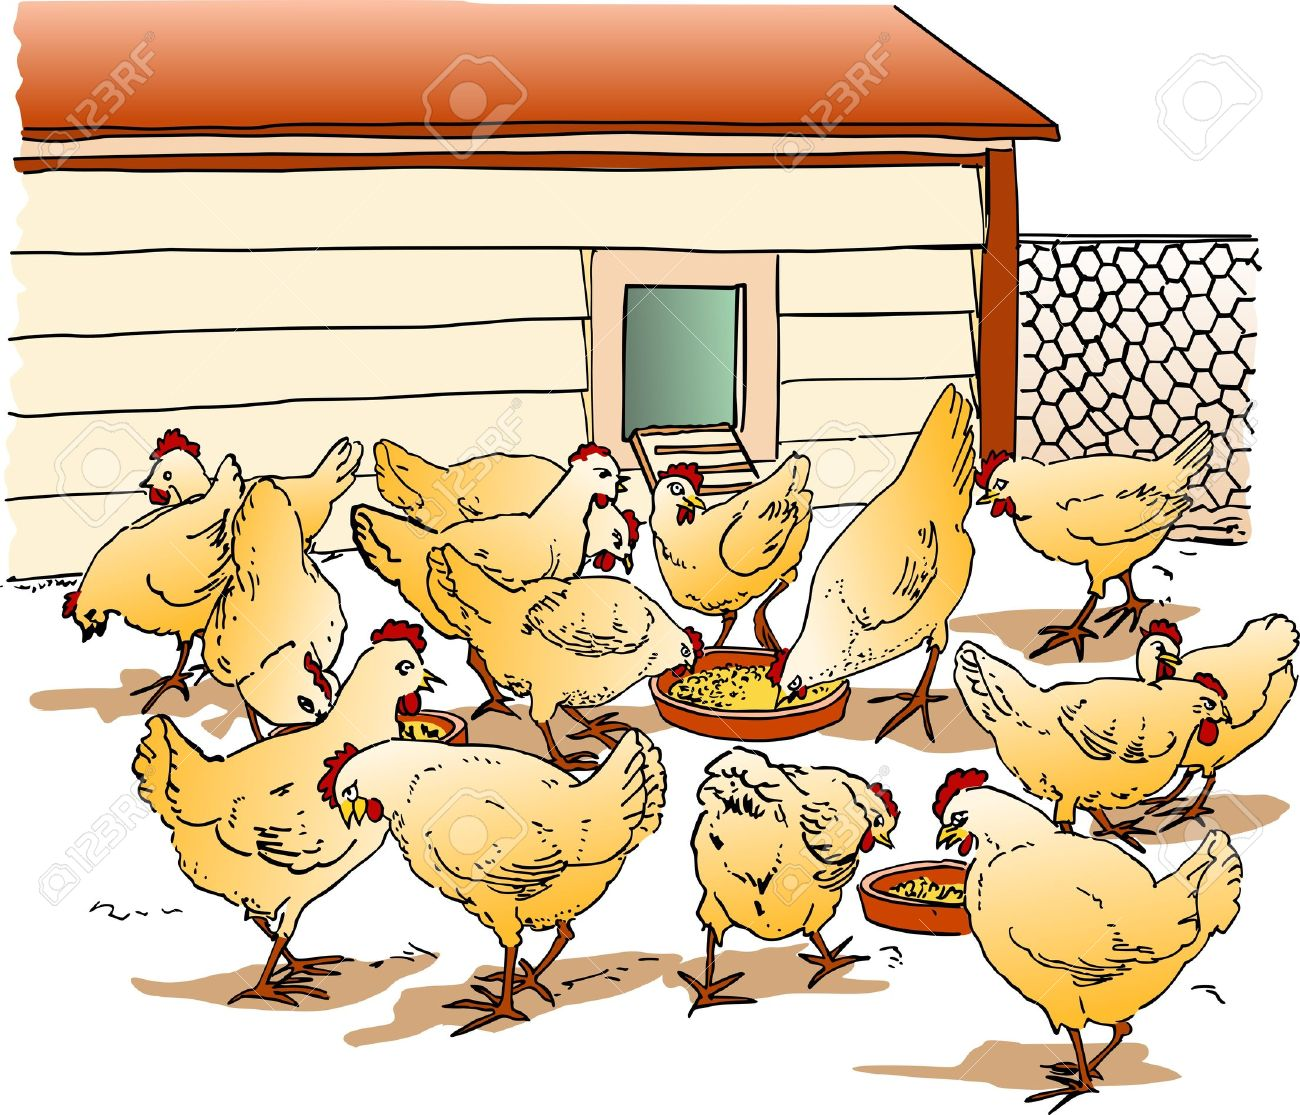 chicken farm clipart - Clipground